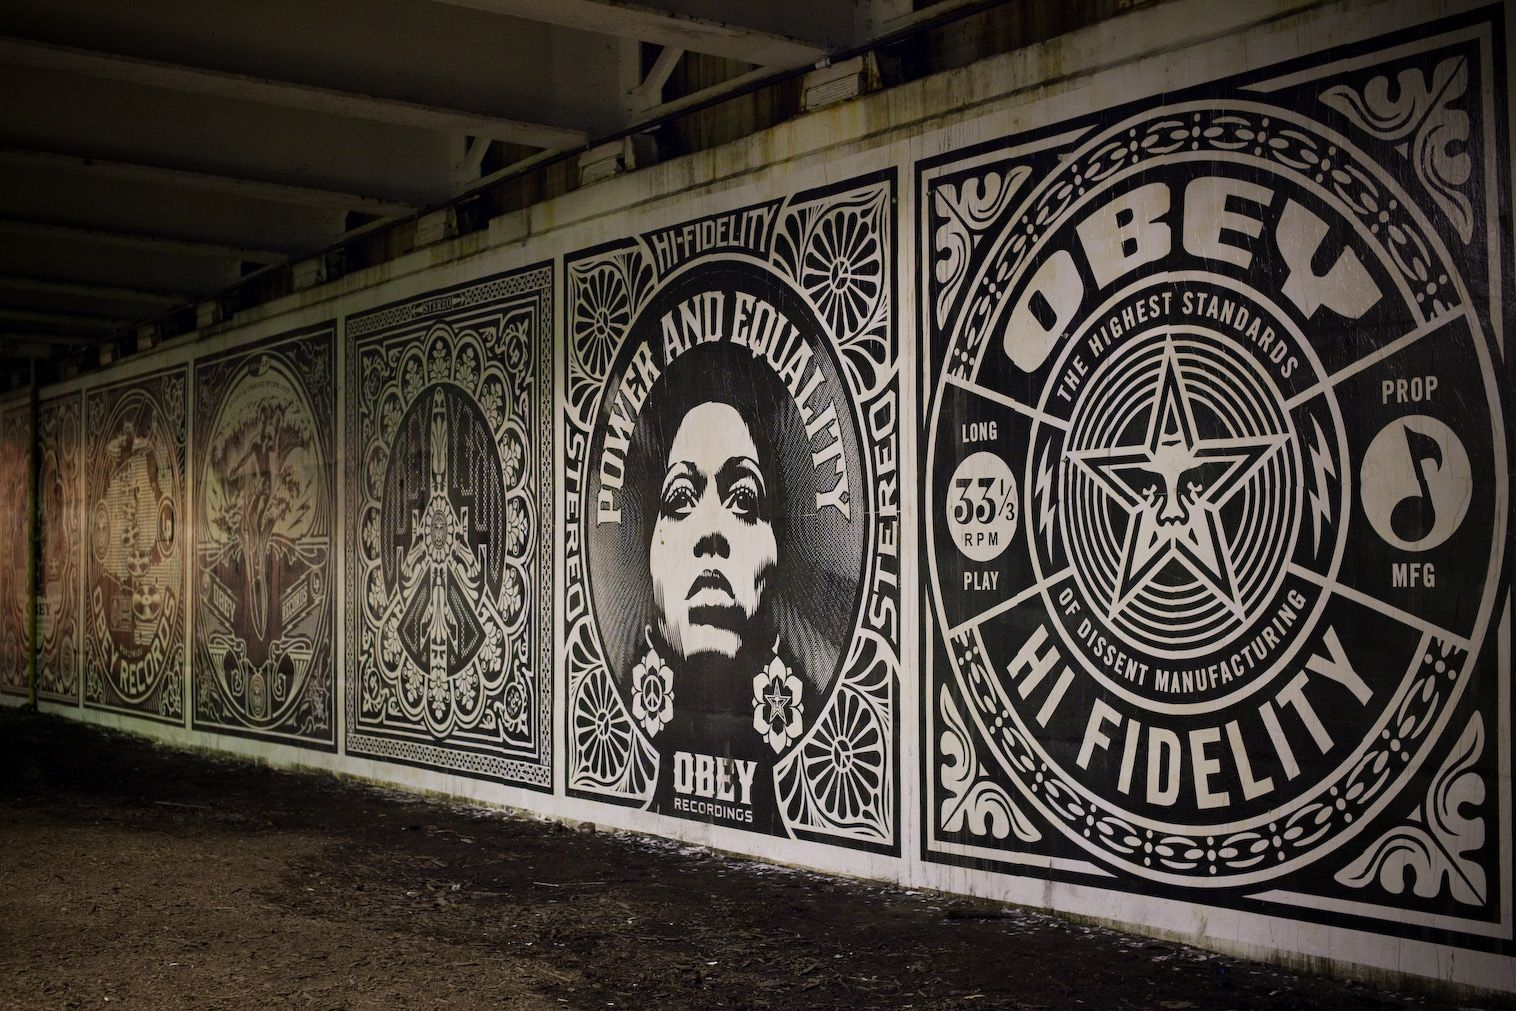 Obey 39 revolutions 39 murals in chicago postersandprints for Chicago mural project